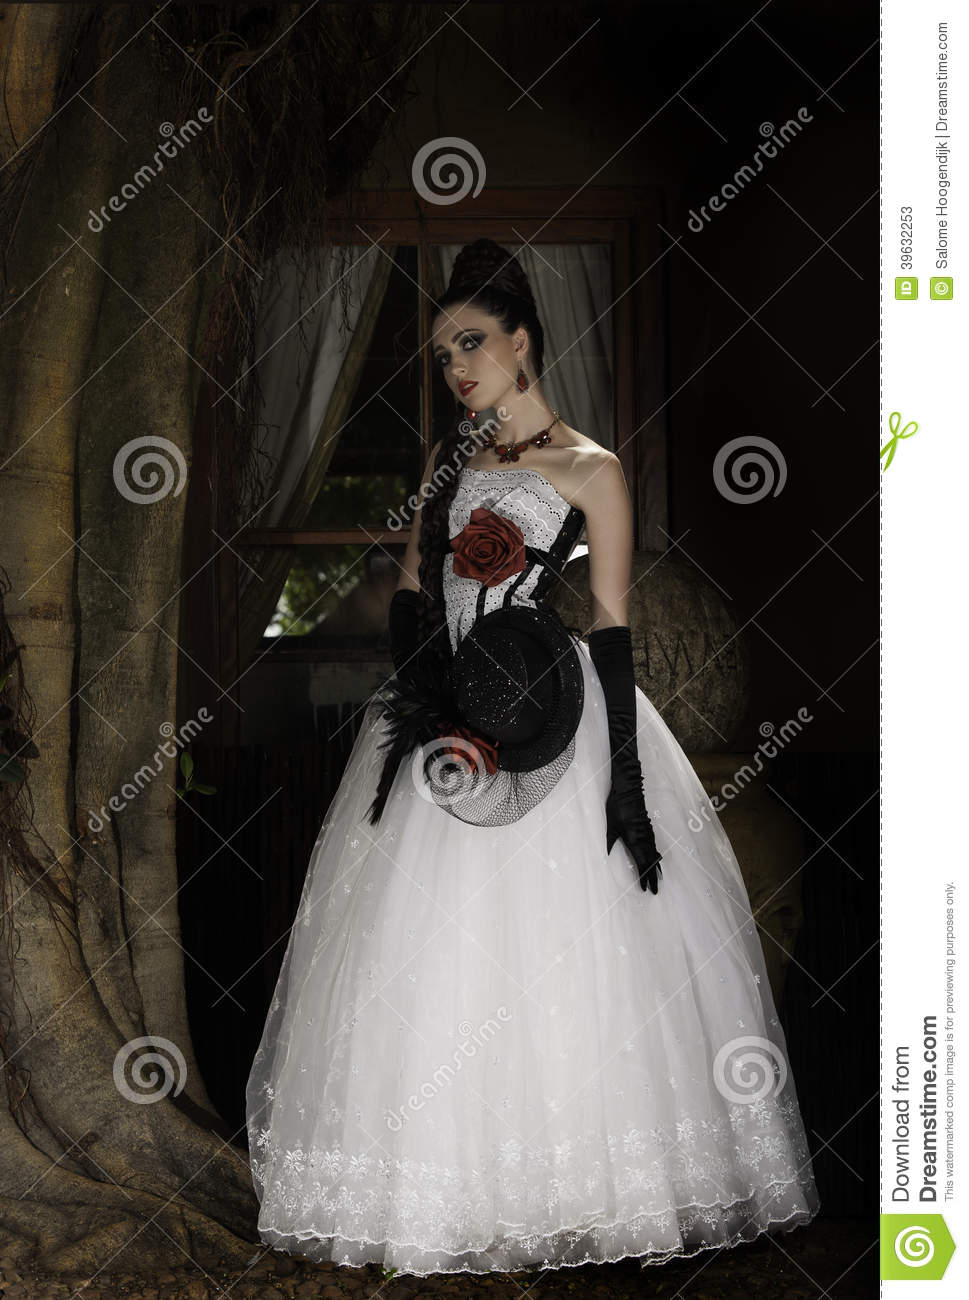 Dramatic Woman In Red, White And Black Couture Stock Image - Image ...